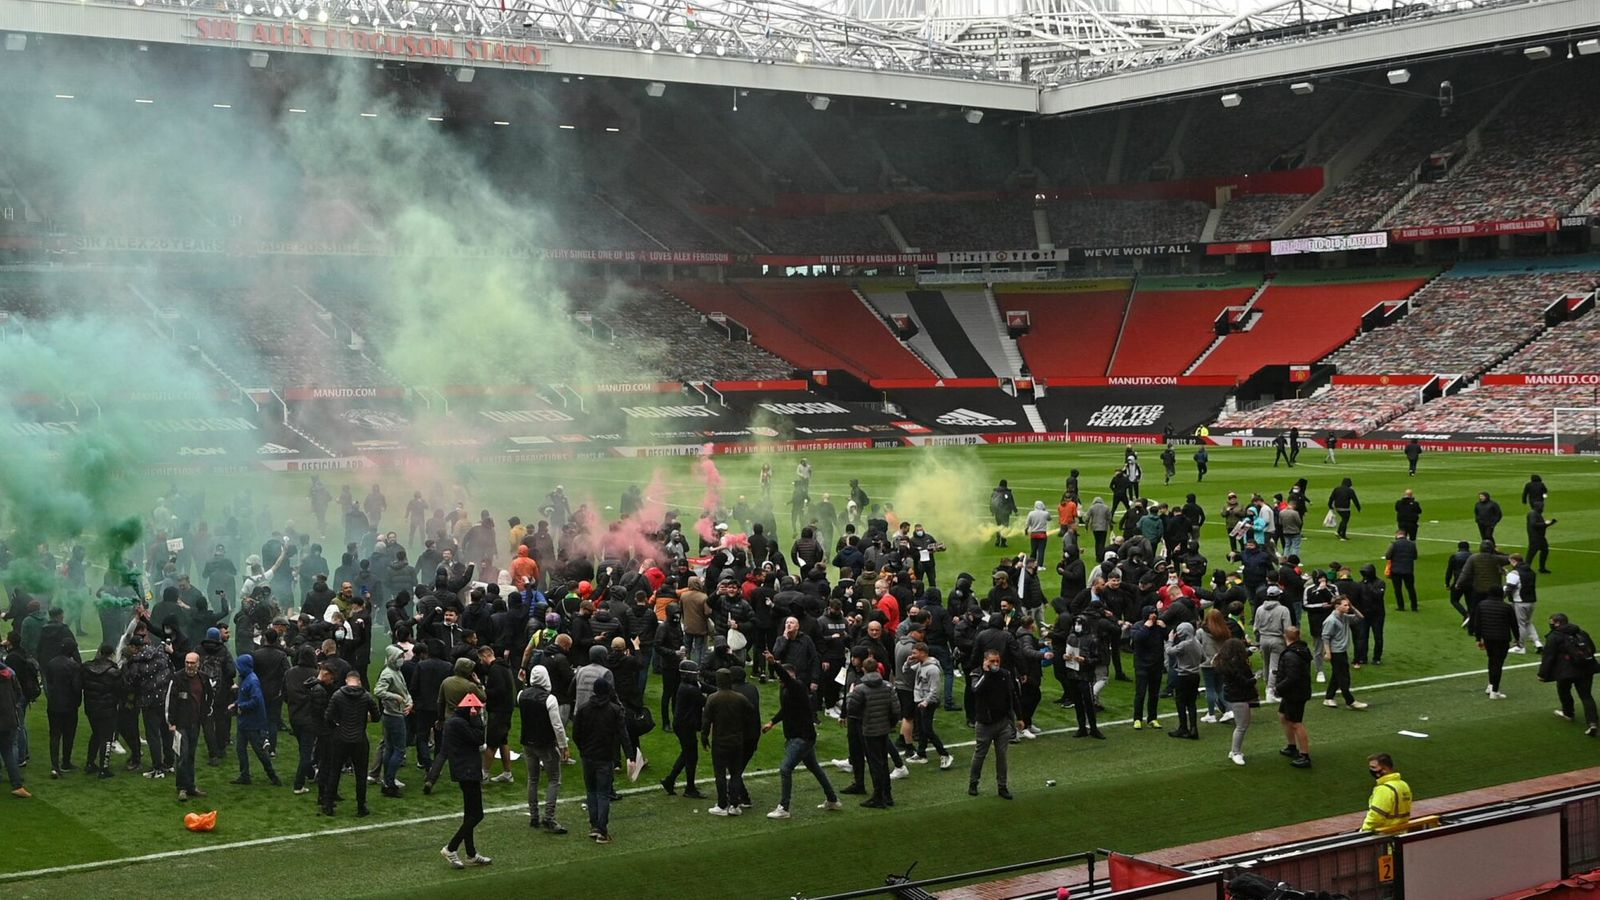 Manchester United fans broke into Old Trafford and protested on the pitch